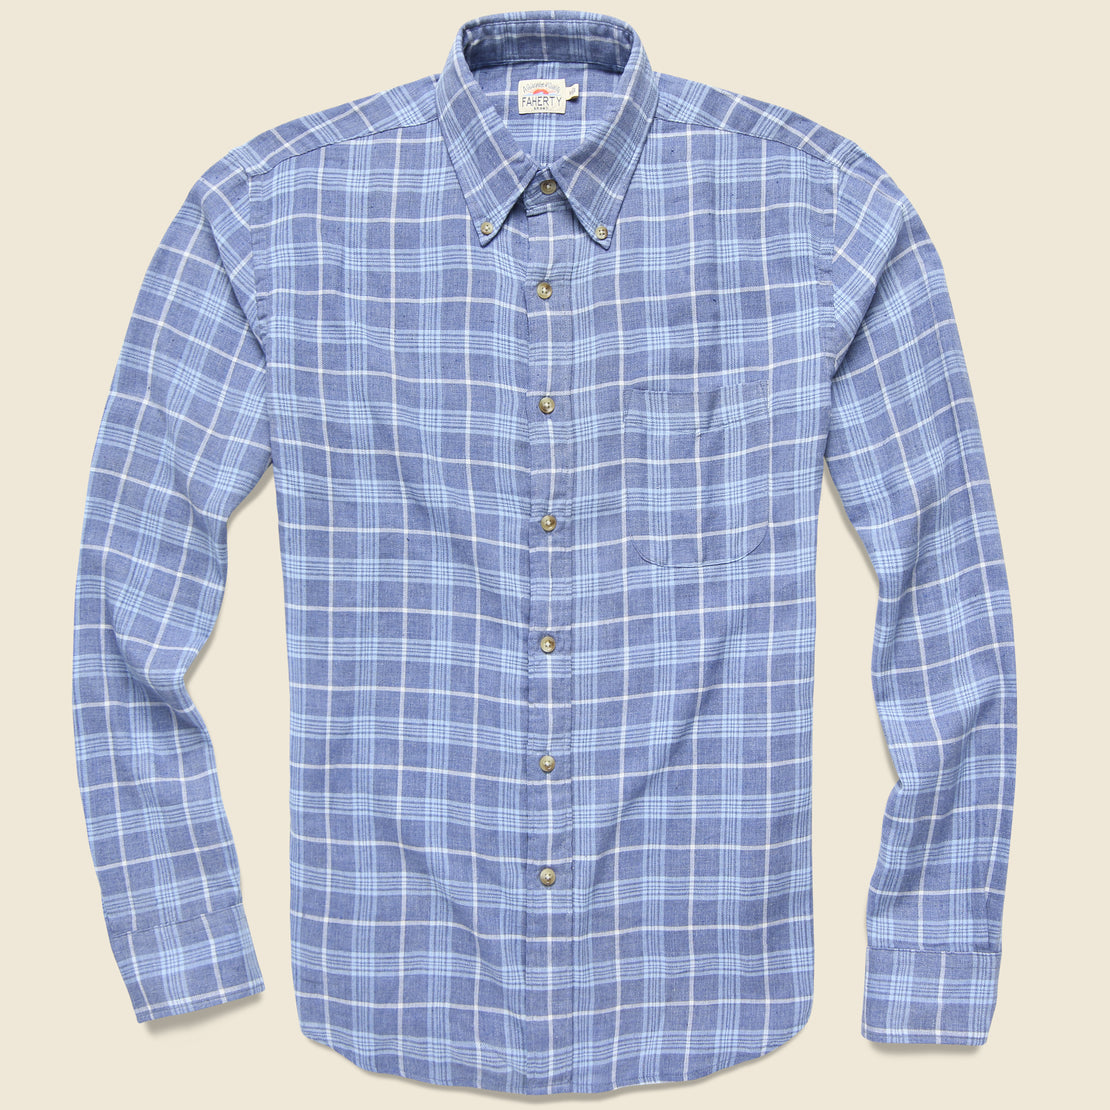 Faherty Pacific Shirt - Light Blue Melange